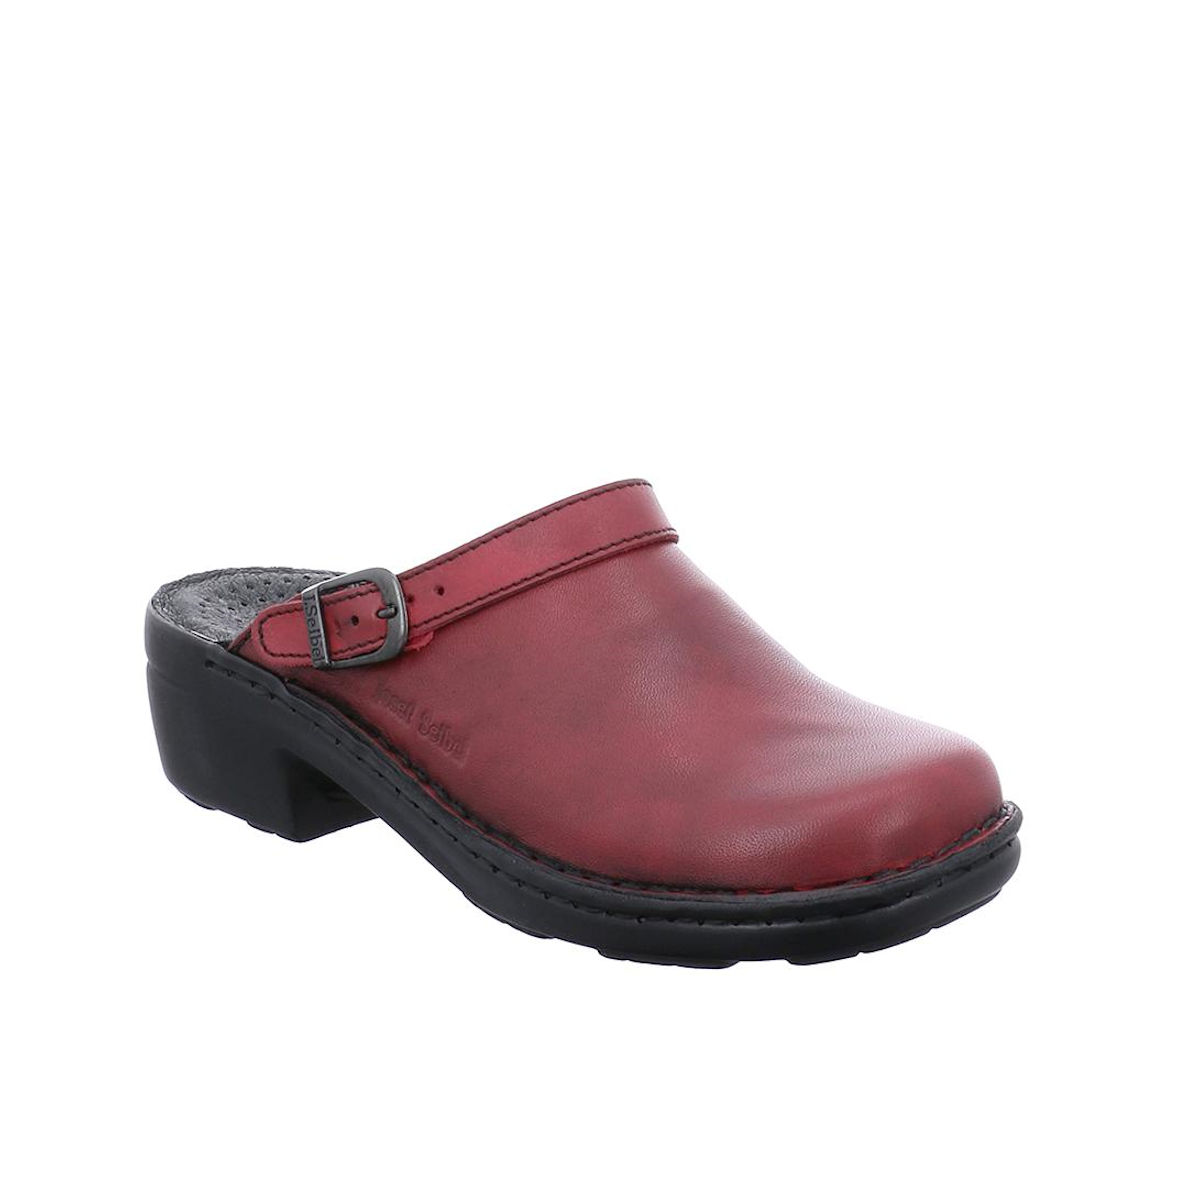 Josef Seibel Betsy Red Hibiscus Slip on Mule